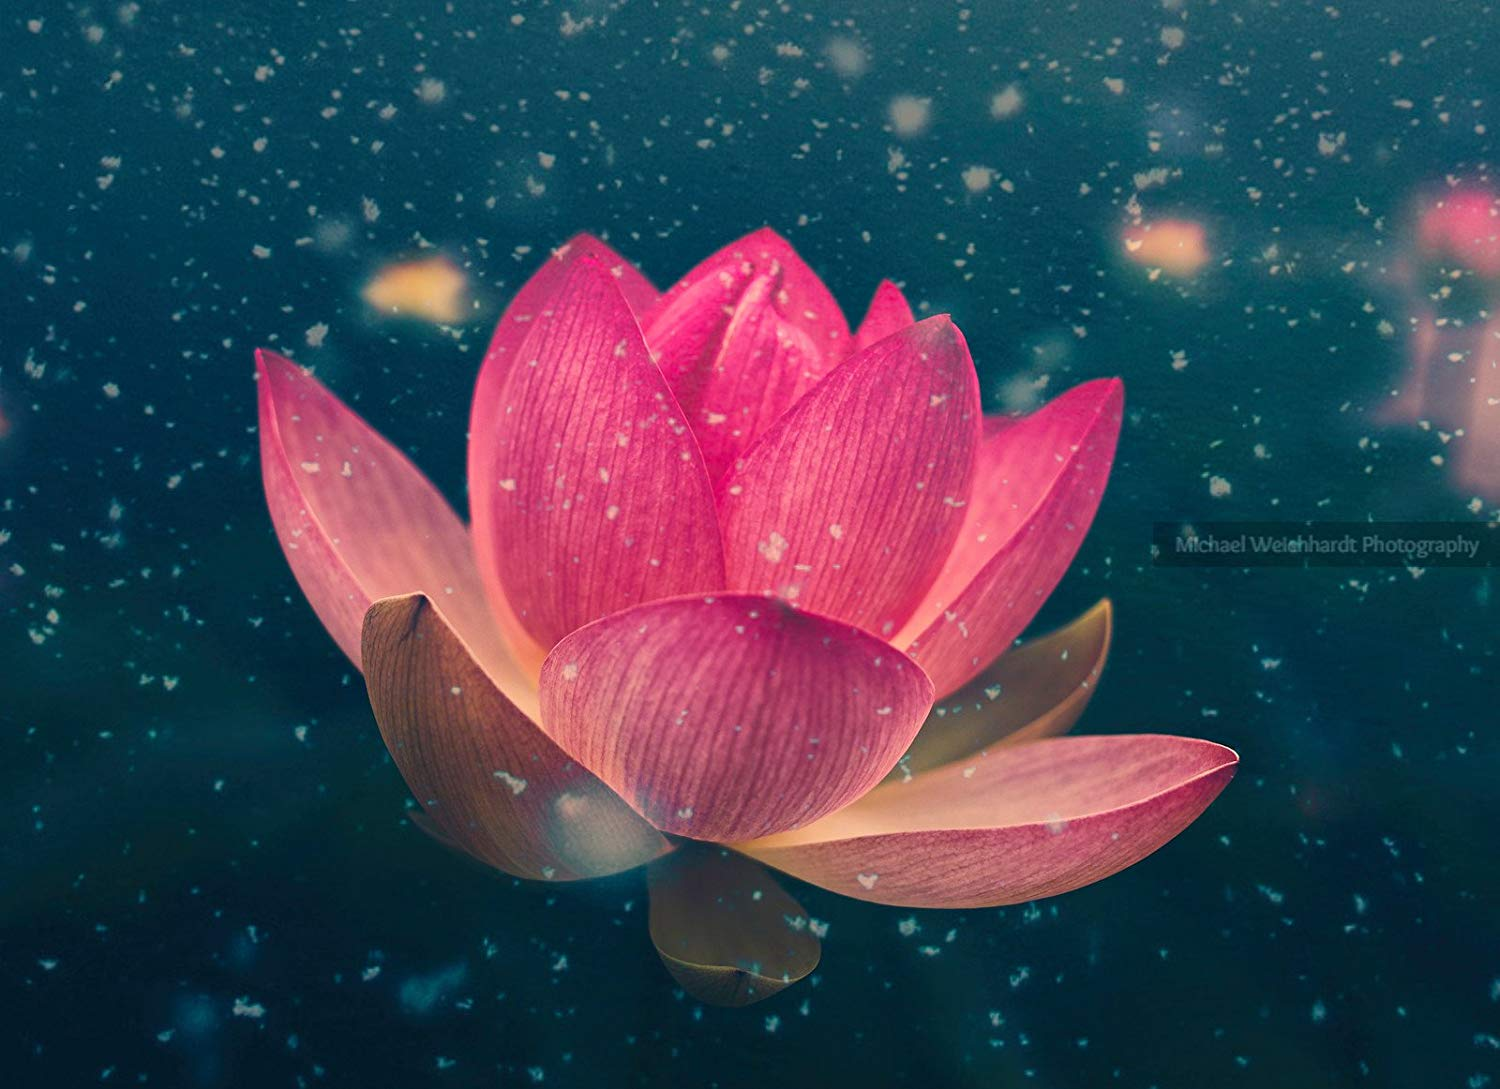 Winter Lotus Flower Wallpaper Photo Print, Texture, Professional Photography Print, Nature Wallpaper, Paper & Canvas Prints, Nature Photography